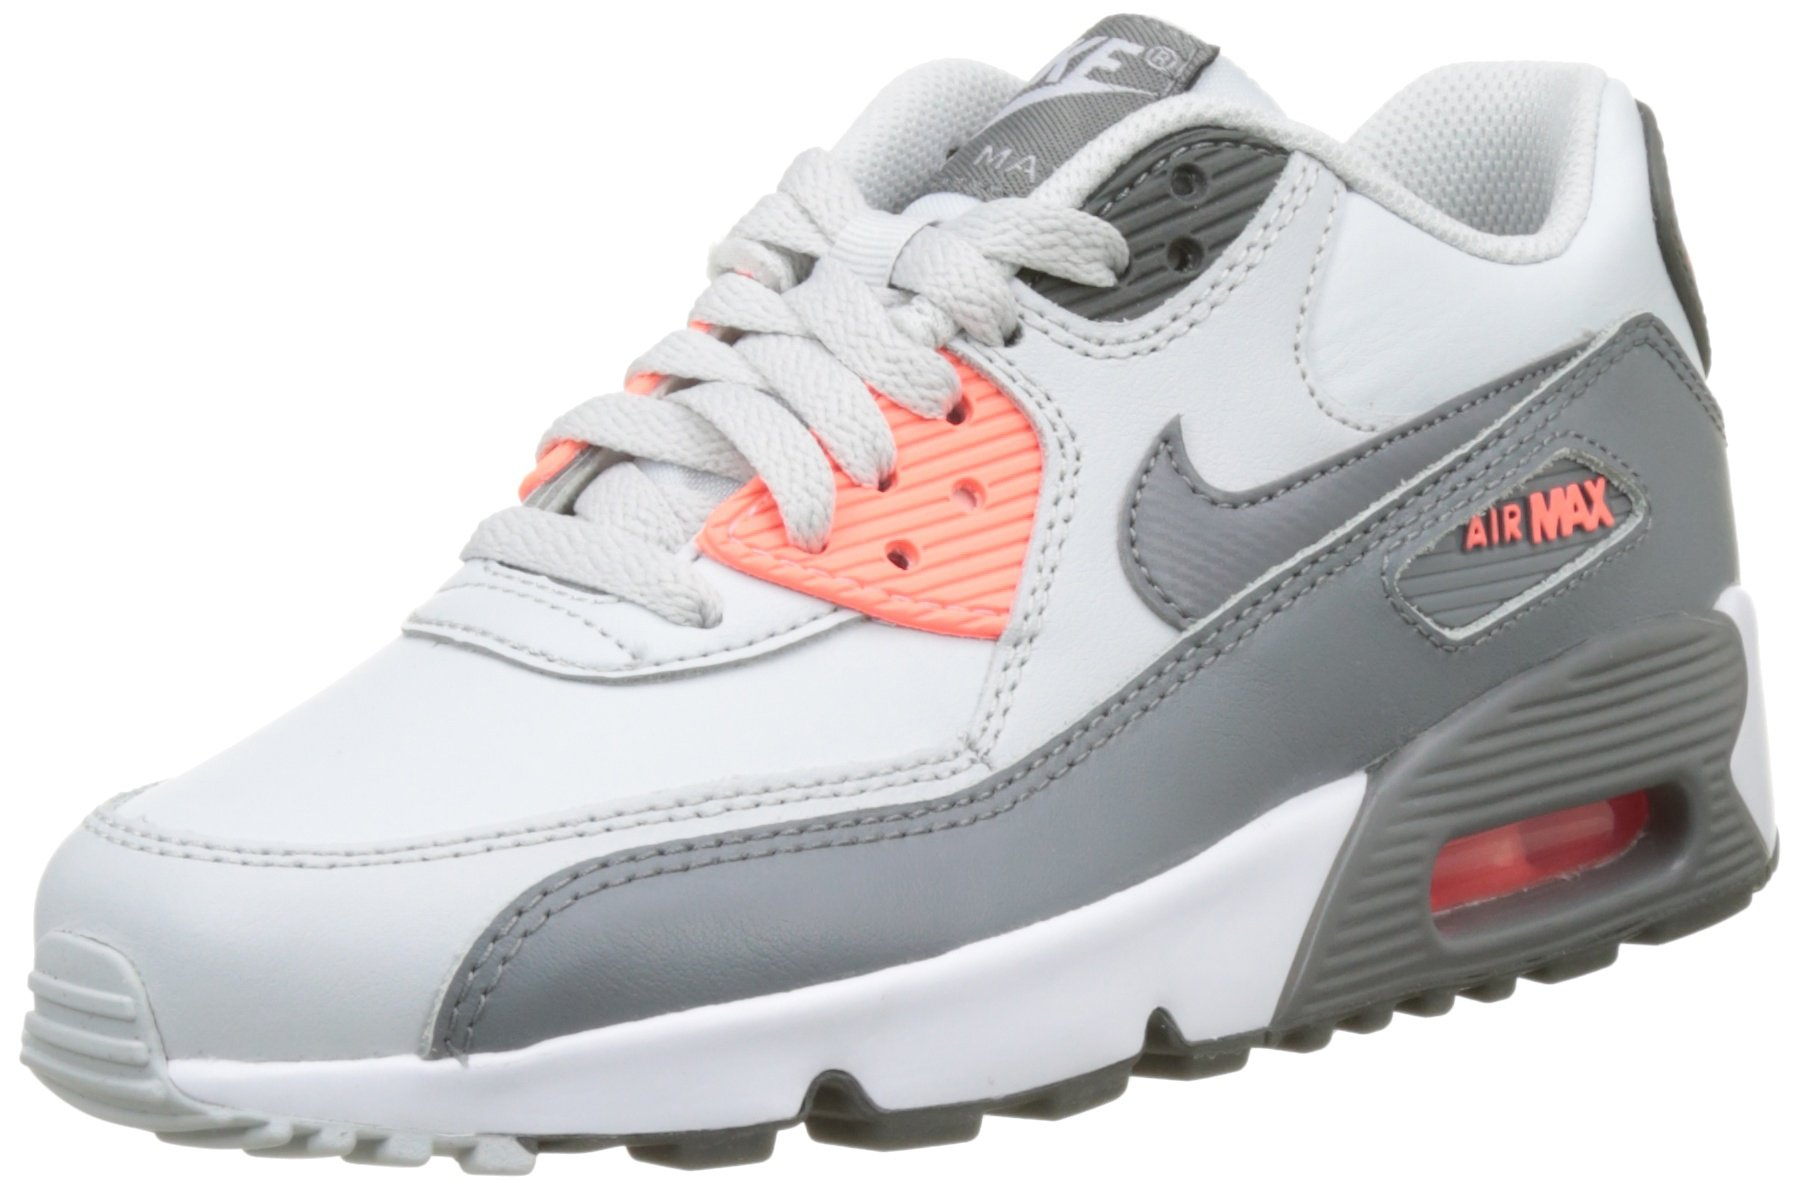 5e1cf2b1753793 Galleon - NIKE Air Max 90 LTR Big Kids Style  833376-006 Size  4 Y US